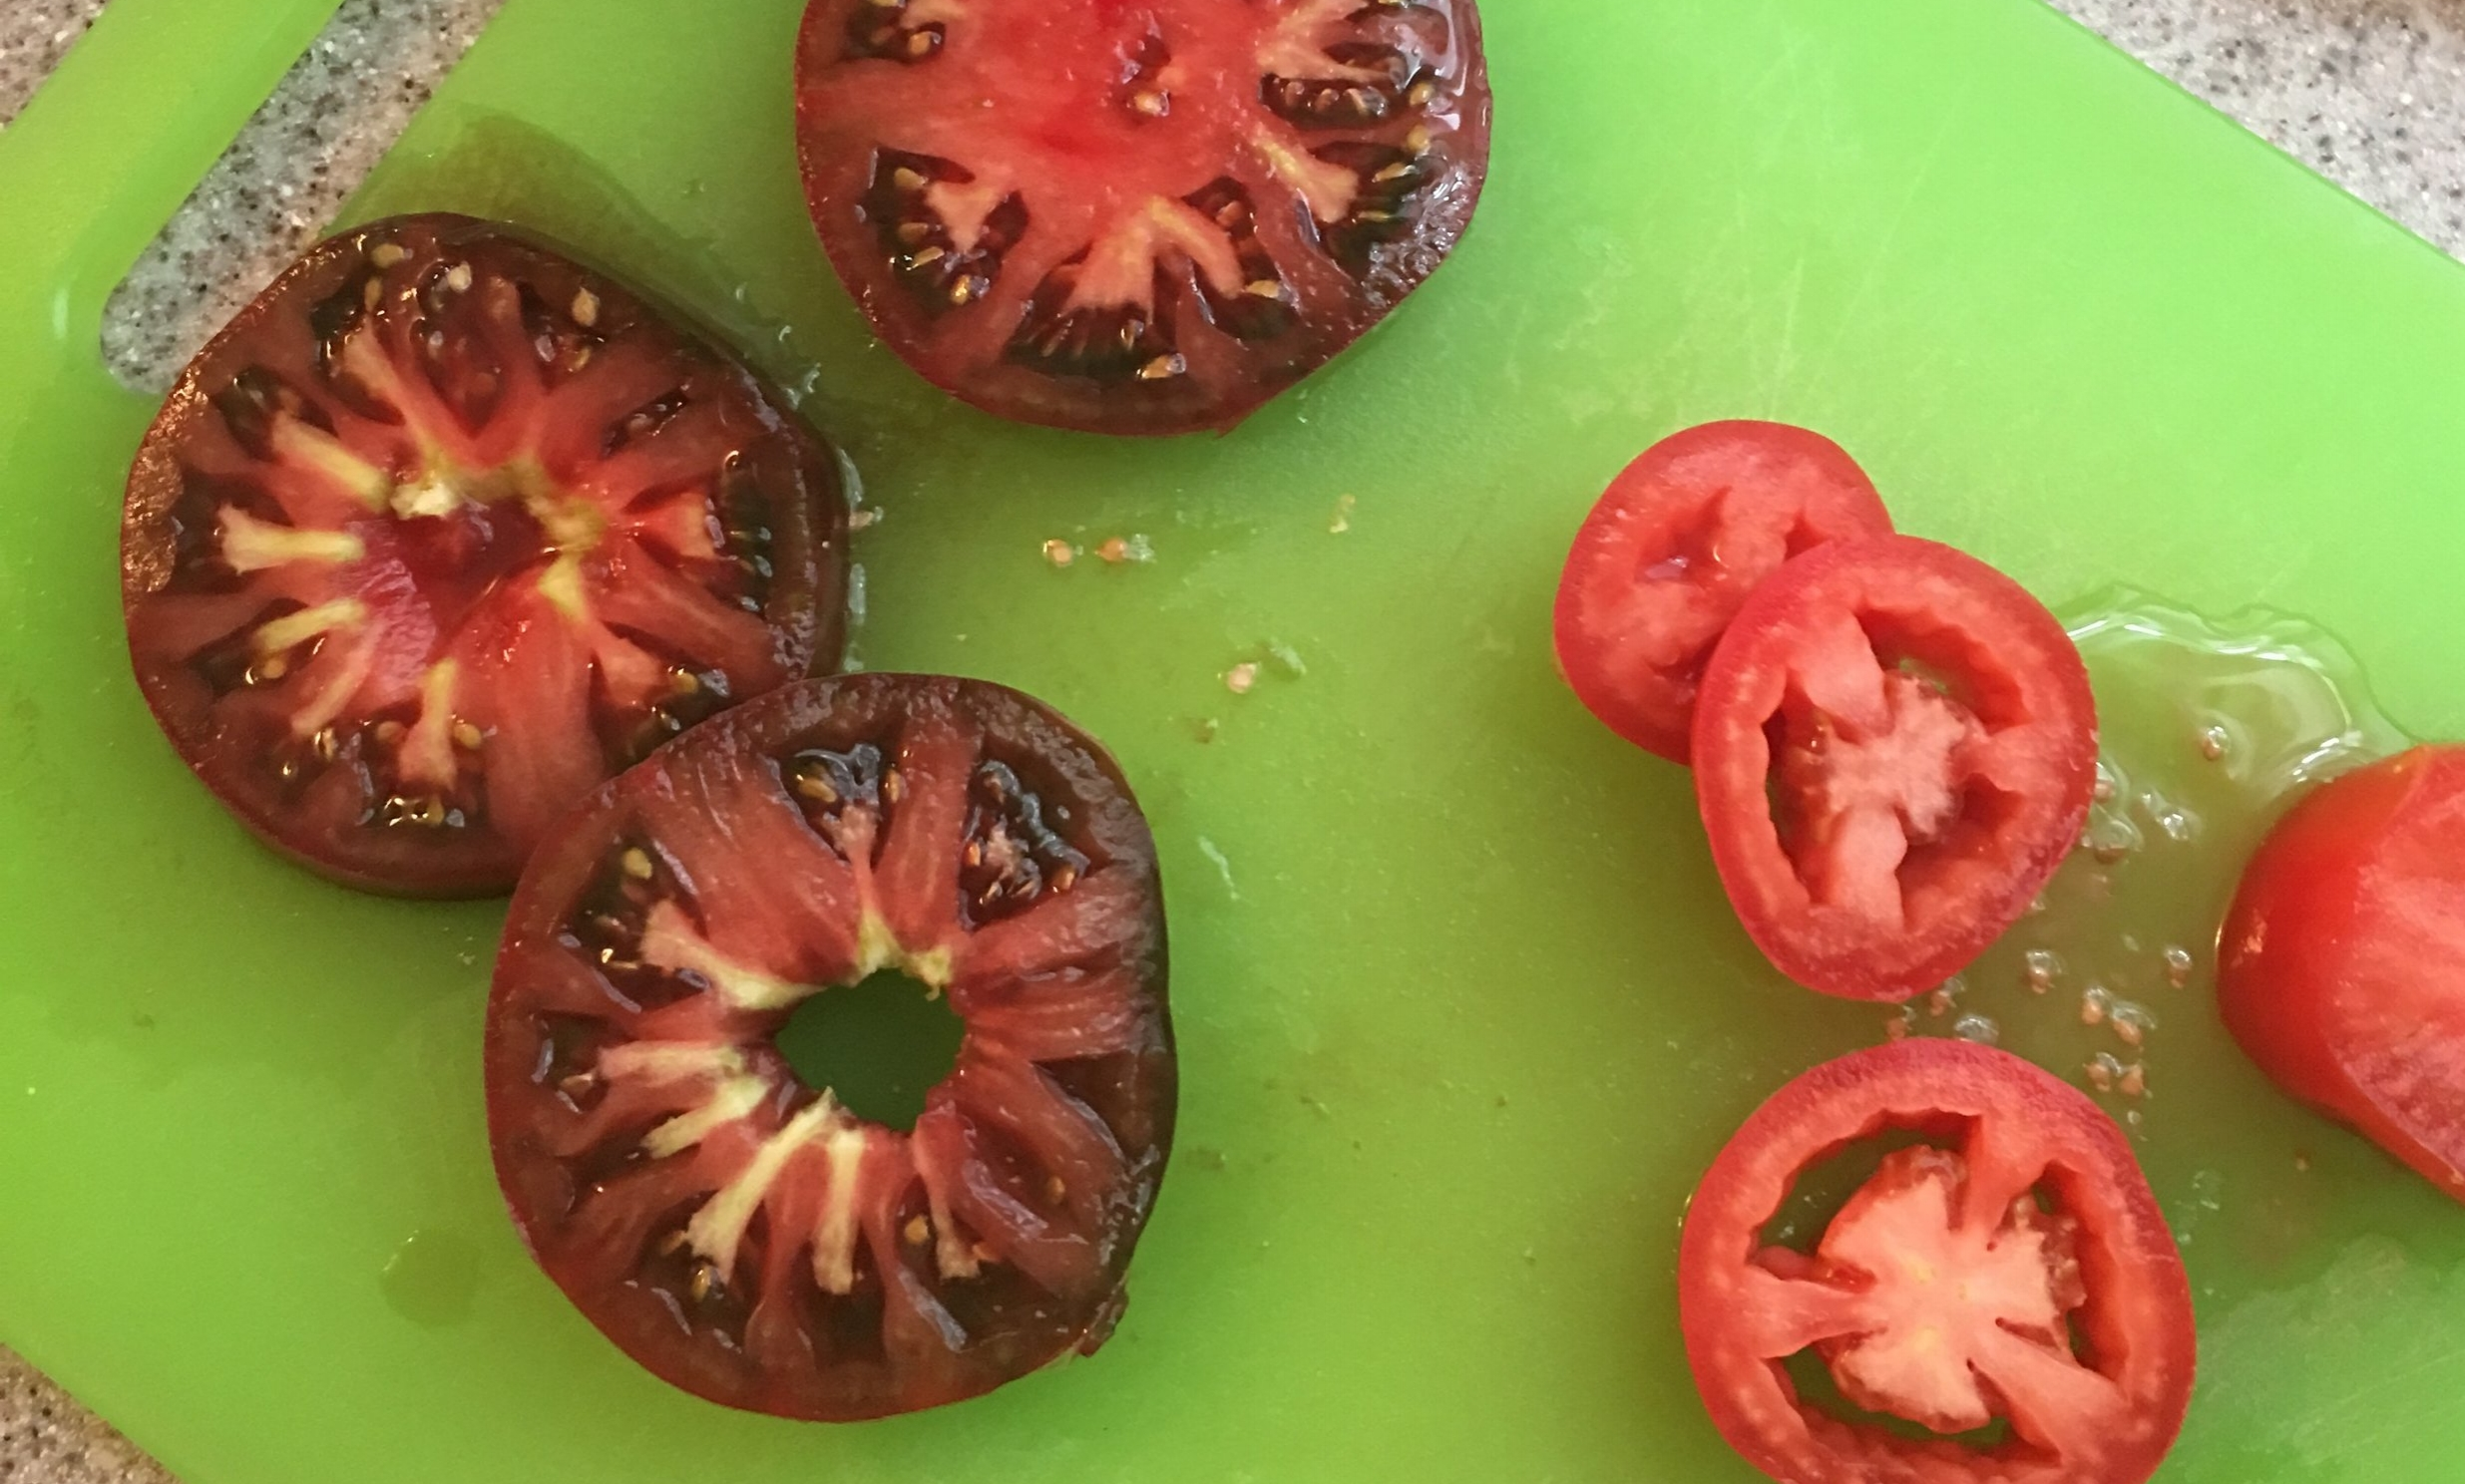 The coloring of homegrown tomatoes vs store-bought tomatoes